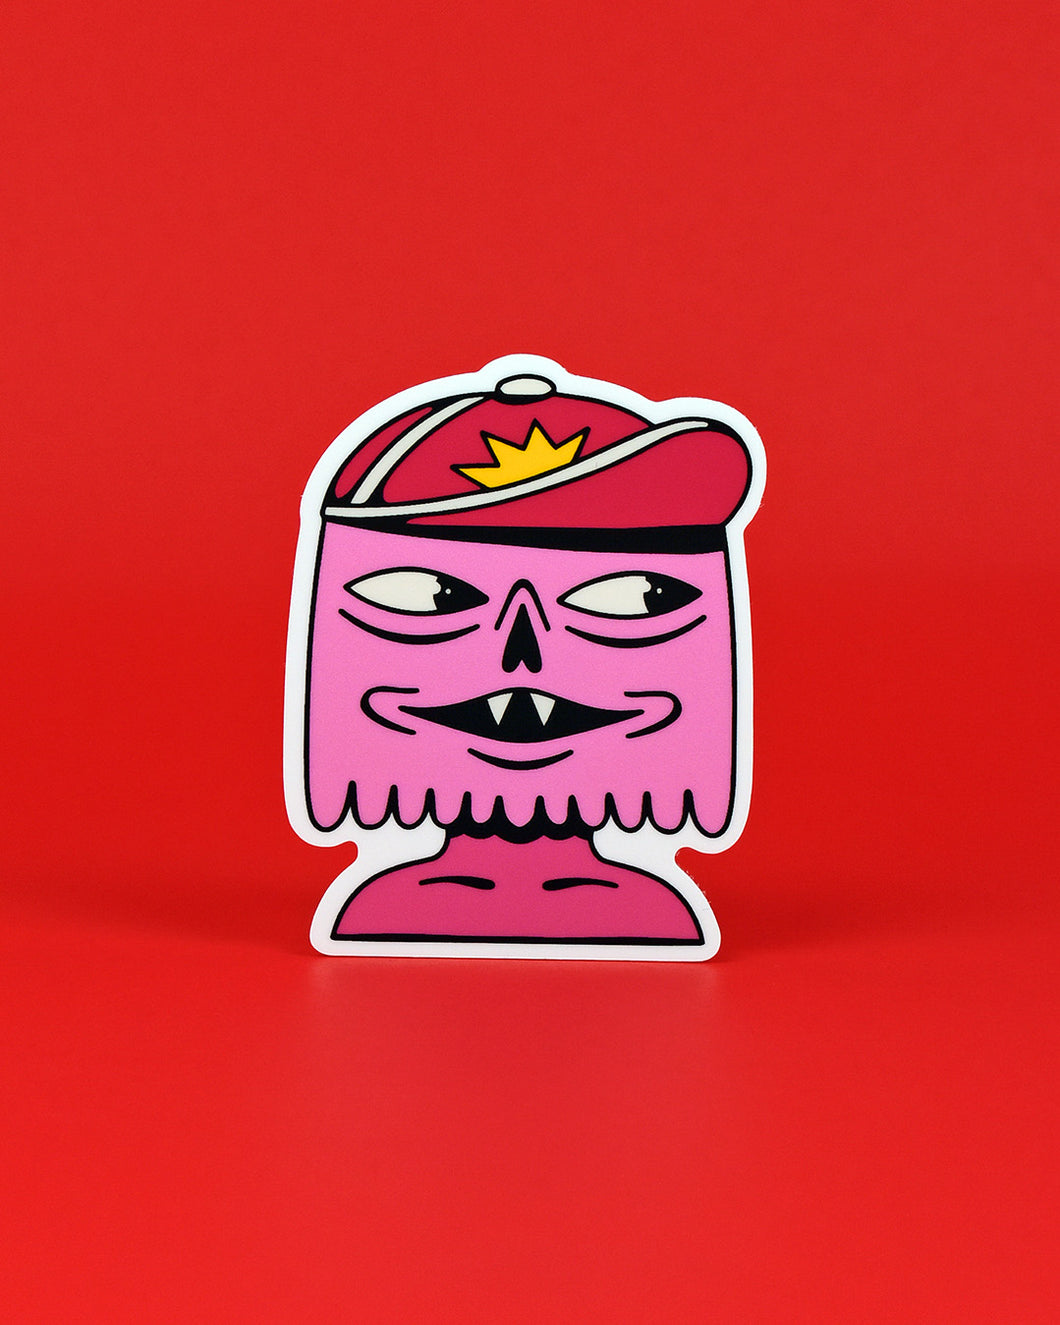 Vinyl sticker of a pink boyish creature shown from the neck up. Jax's face is a half-oval with a scalloped-edged chin. 2 almond shaped eyes veering off to the right, eye bags below, a hollow nasal opening like that of a skull, and a slightly open and mischievous mouth showing 2 fangs. Jax is wearing a dark pink baseball cap with white edges and a yellow star on the crown.